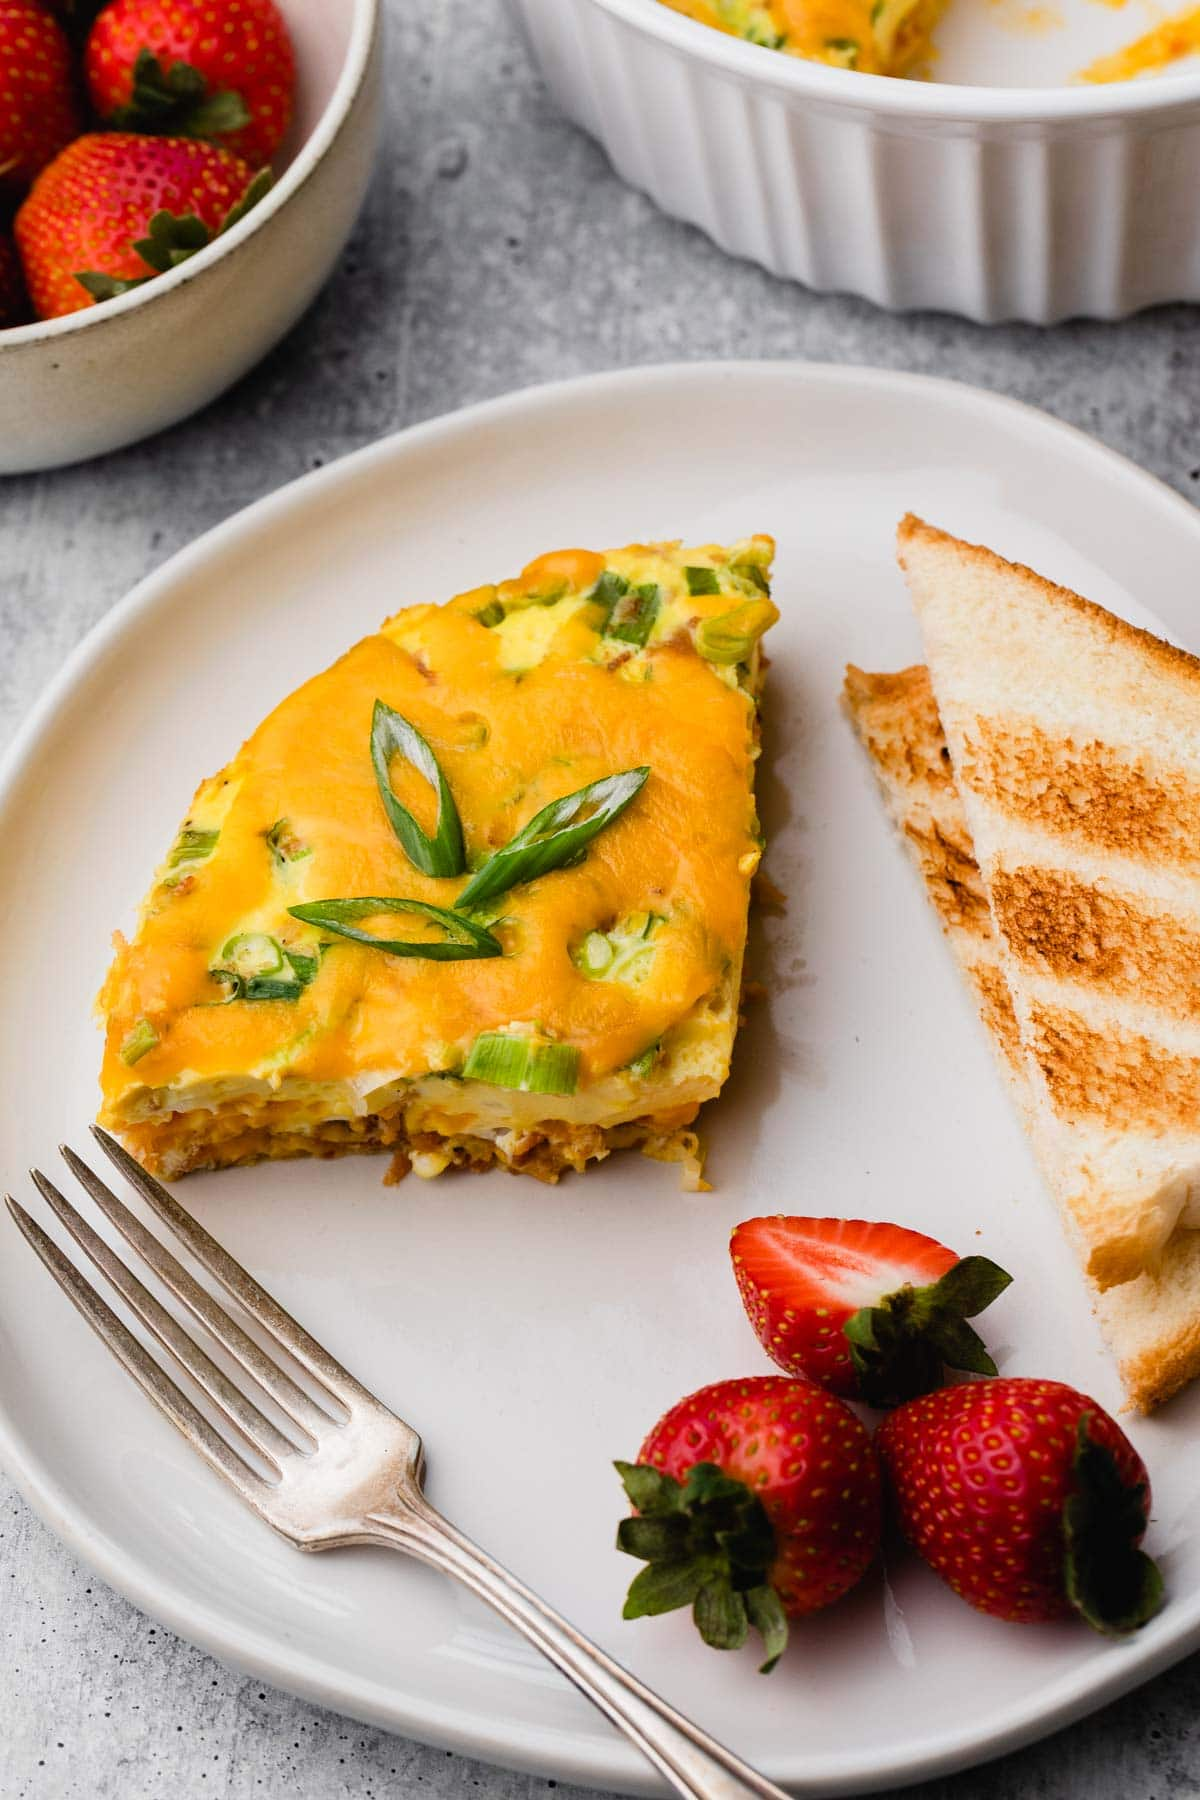 A plate of egg casserole, toast, and strawberries.